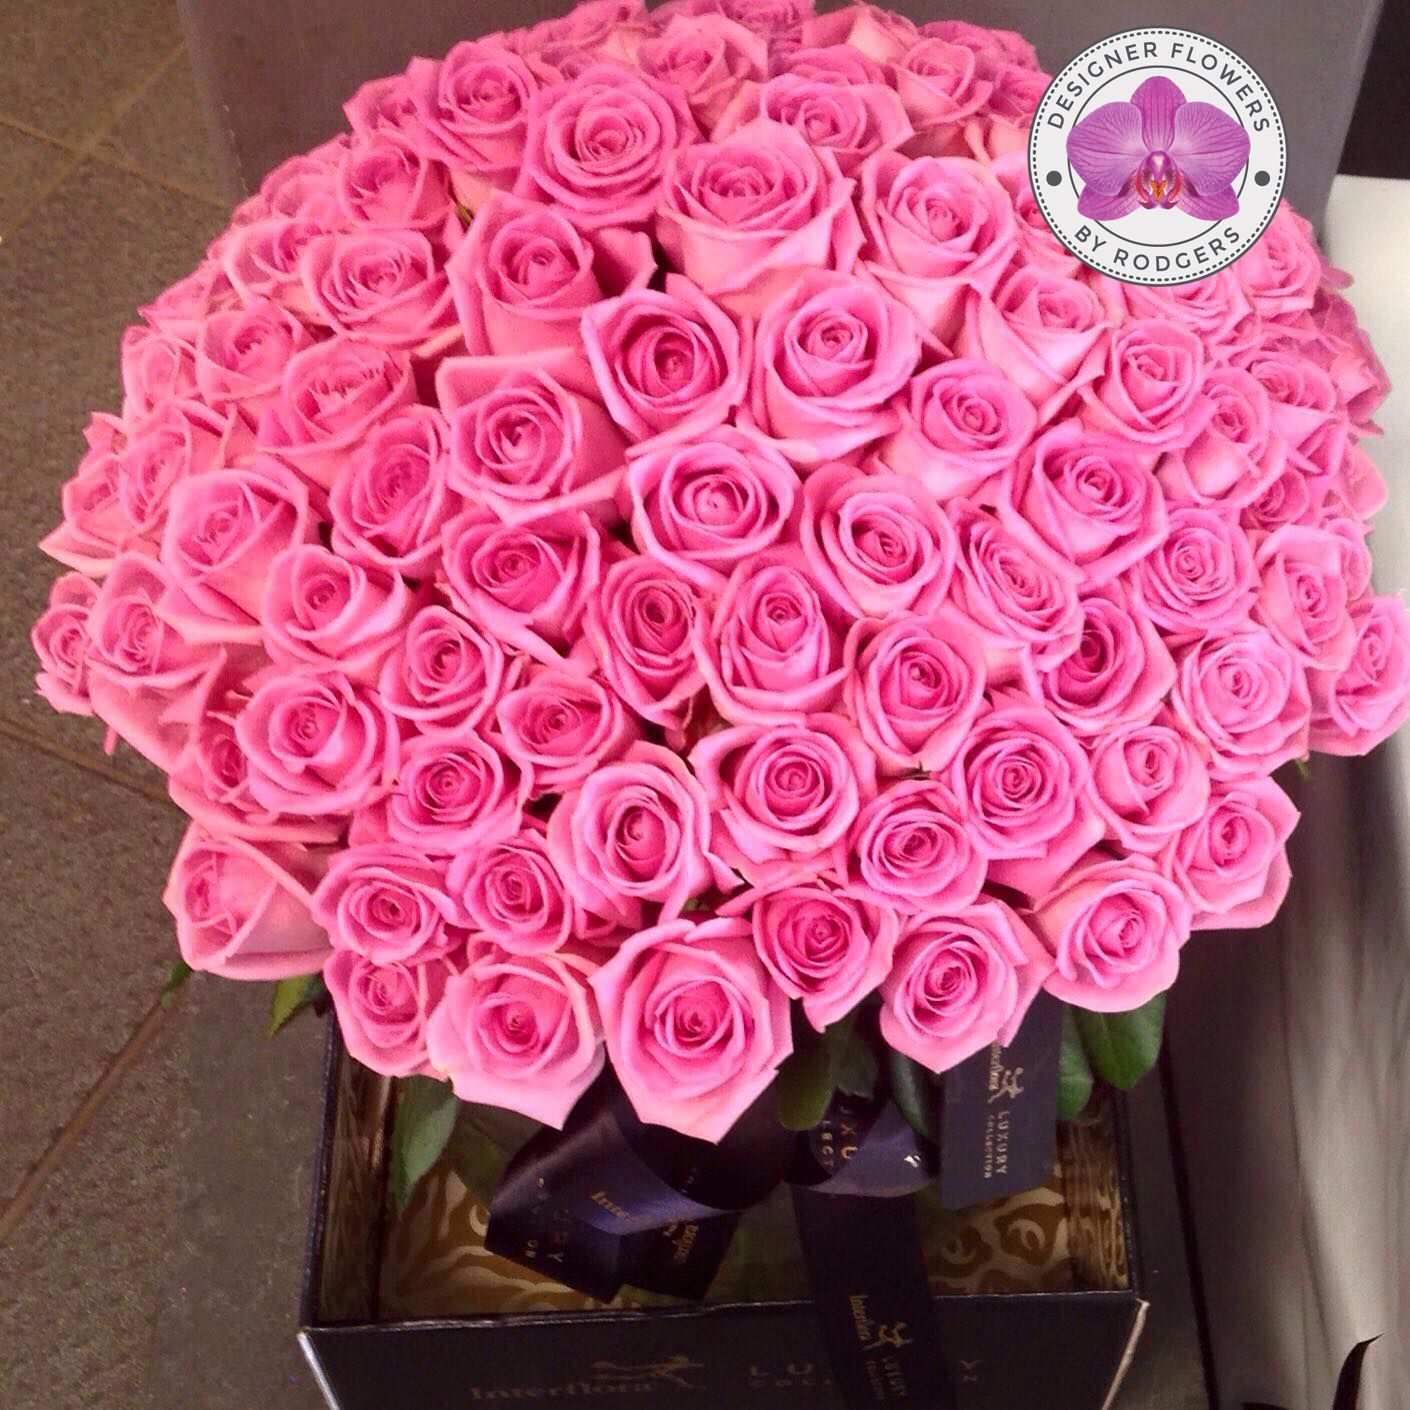 Birthday Surprise 💝 100 x Aqua Roses Designer Flowers by